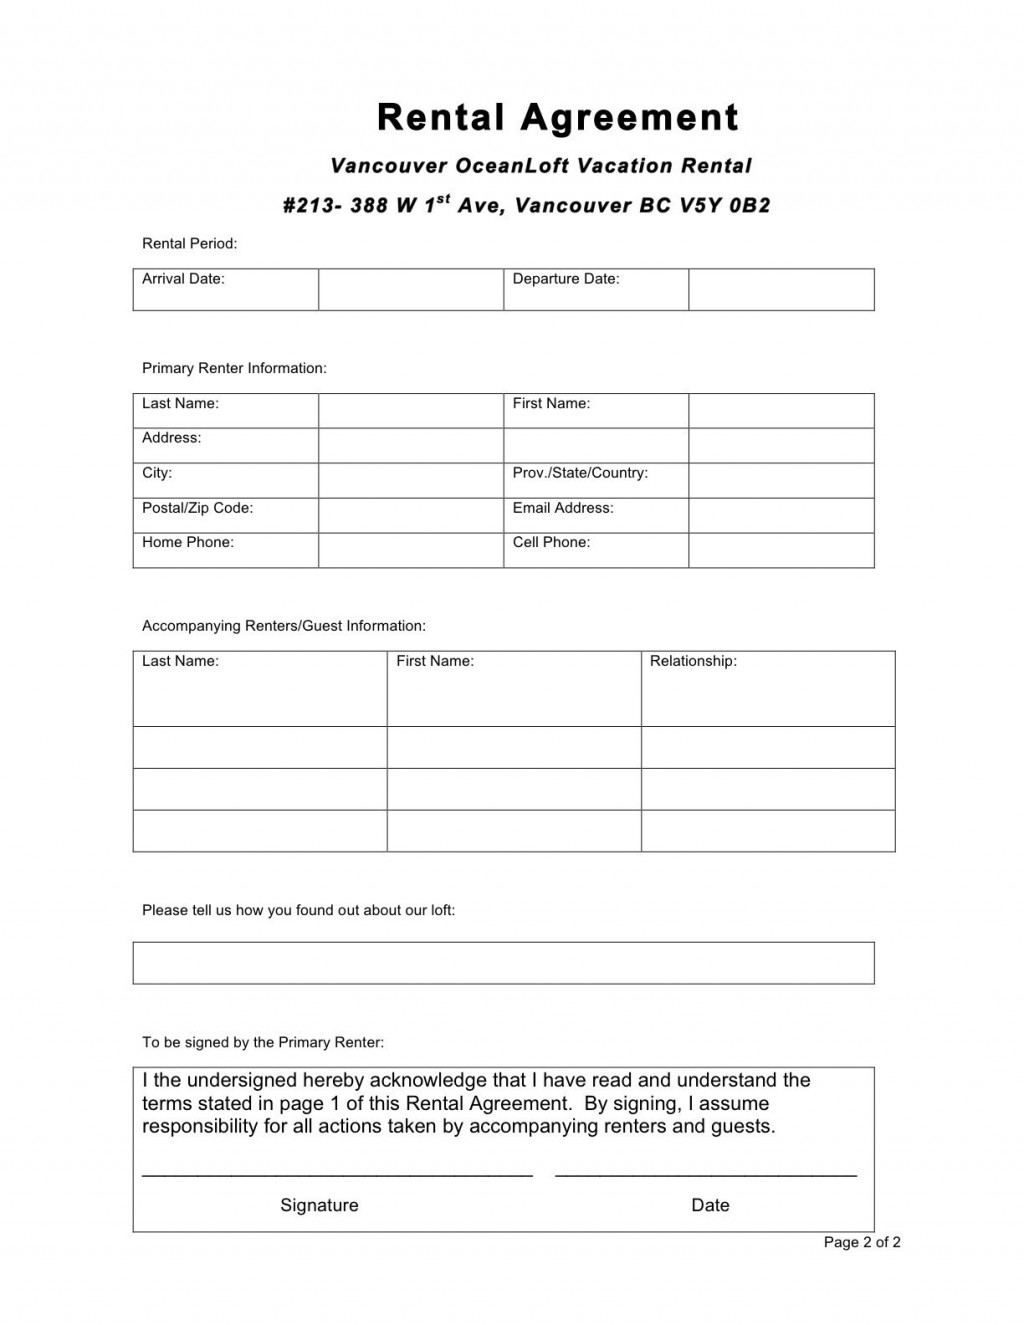 014 Rental Agreement Oregon Elegant Best Printable Application Residential Lease 123helpme Free Essay Number Invite Code Unique To Find Your And Enter It Below Large